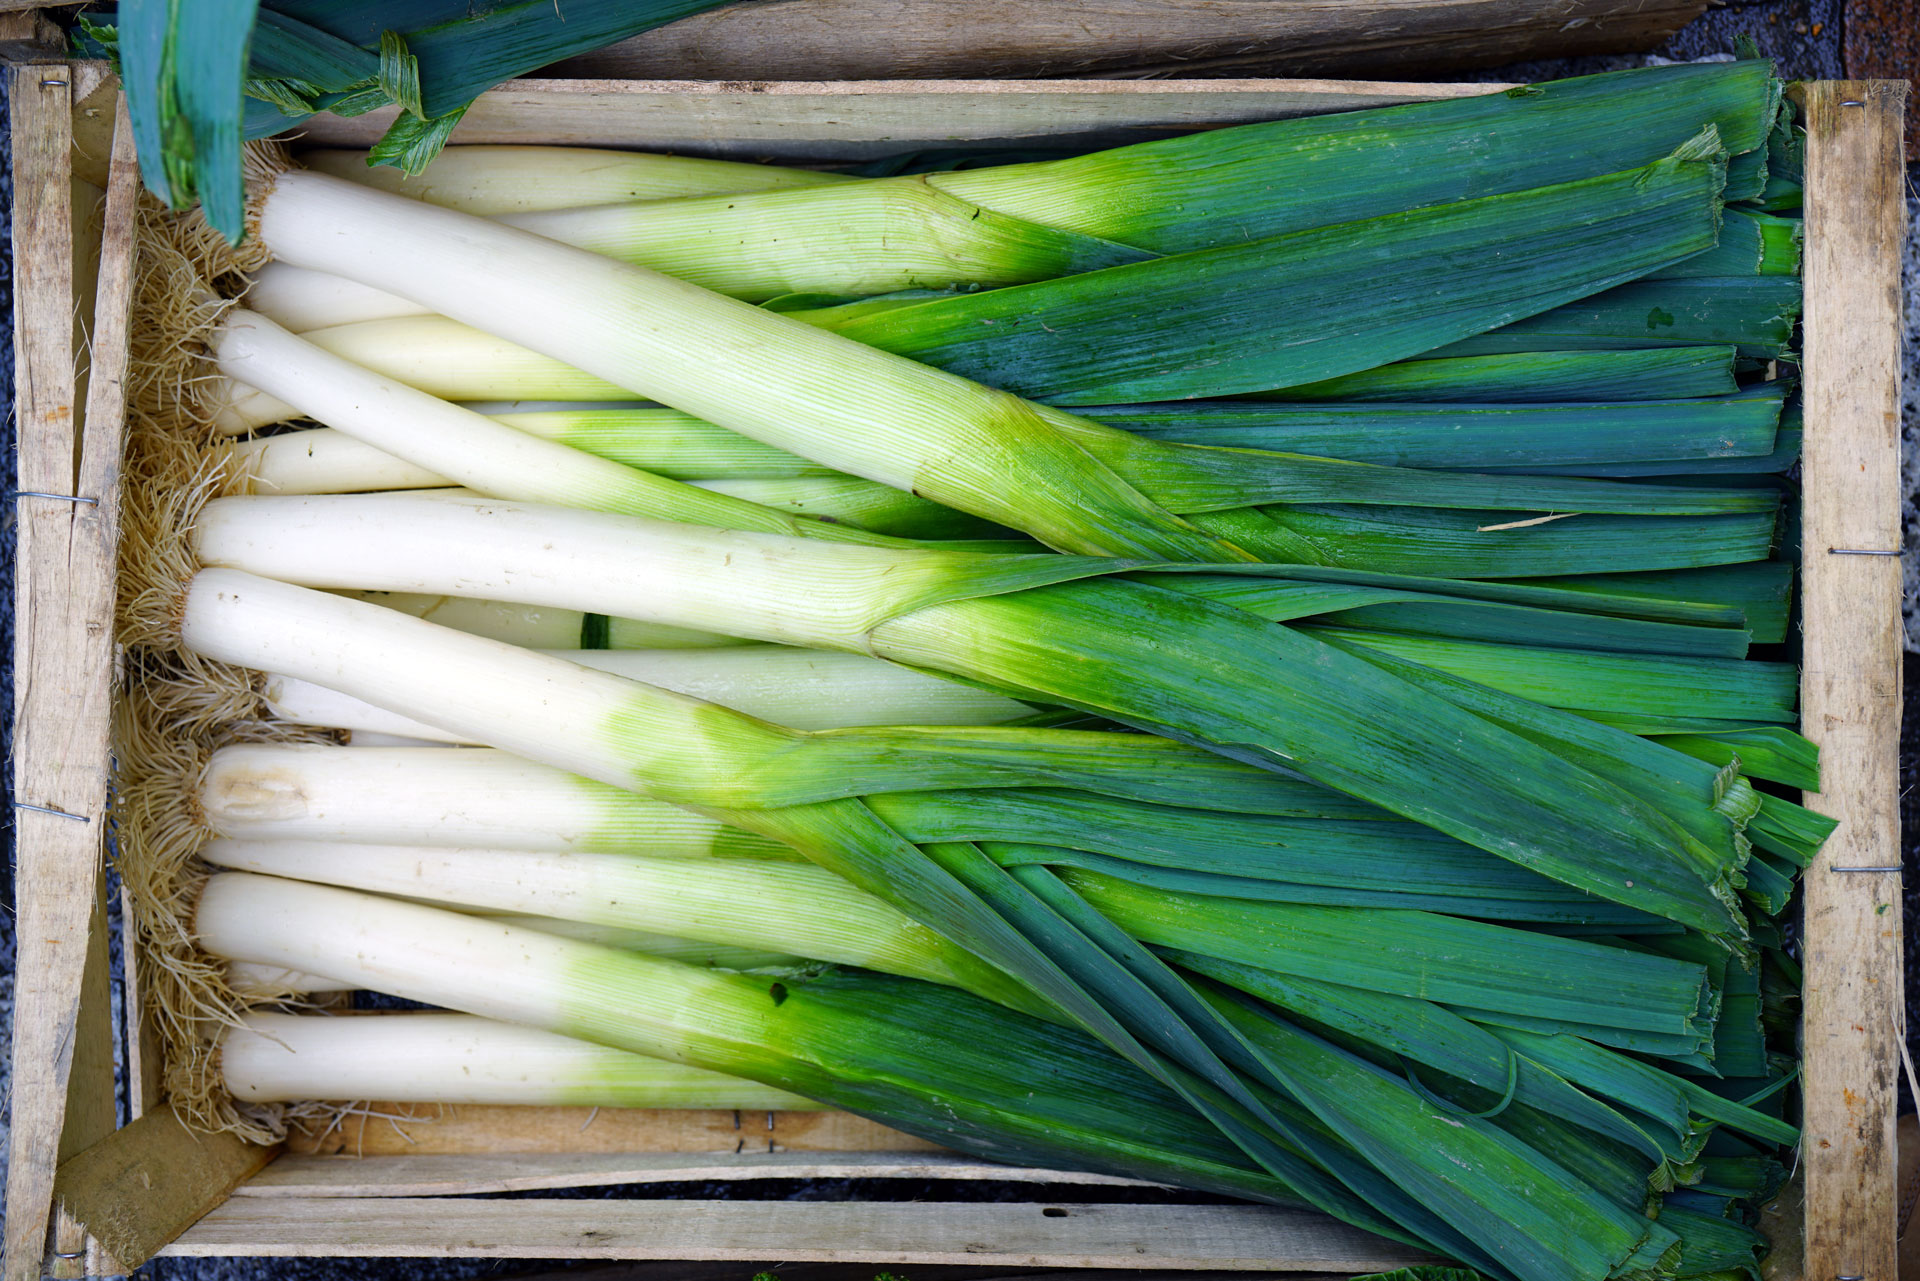 Leek Tops, Scallion and Spring Onion Greens | FoodPrint